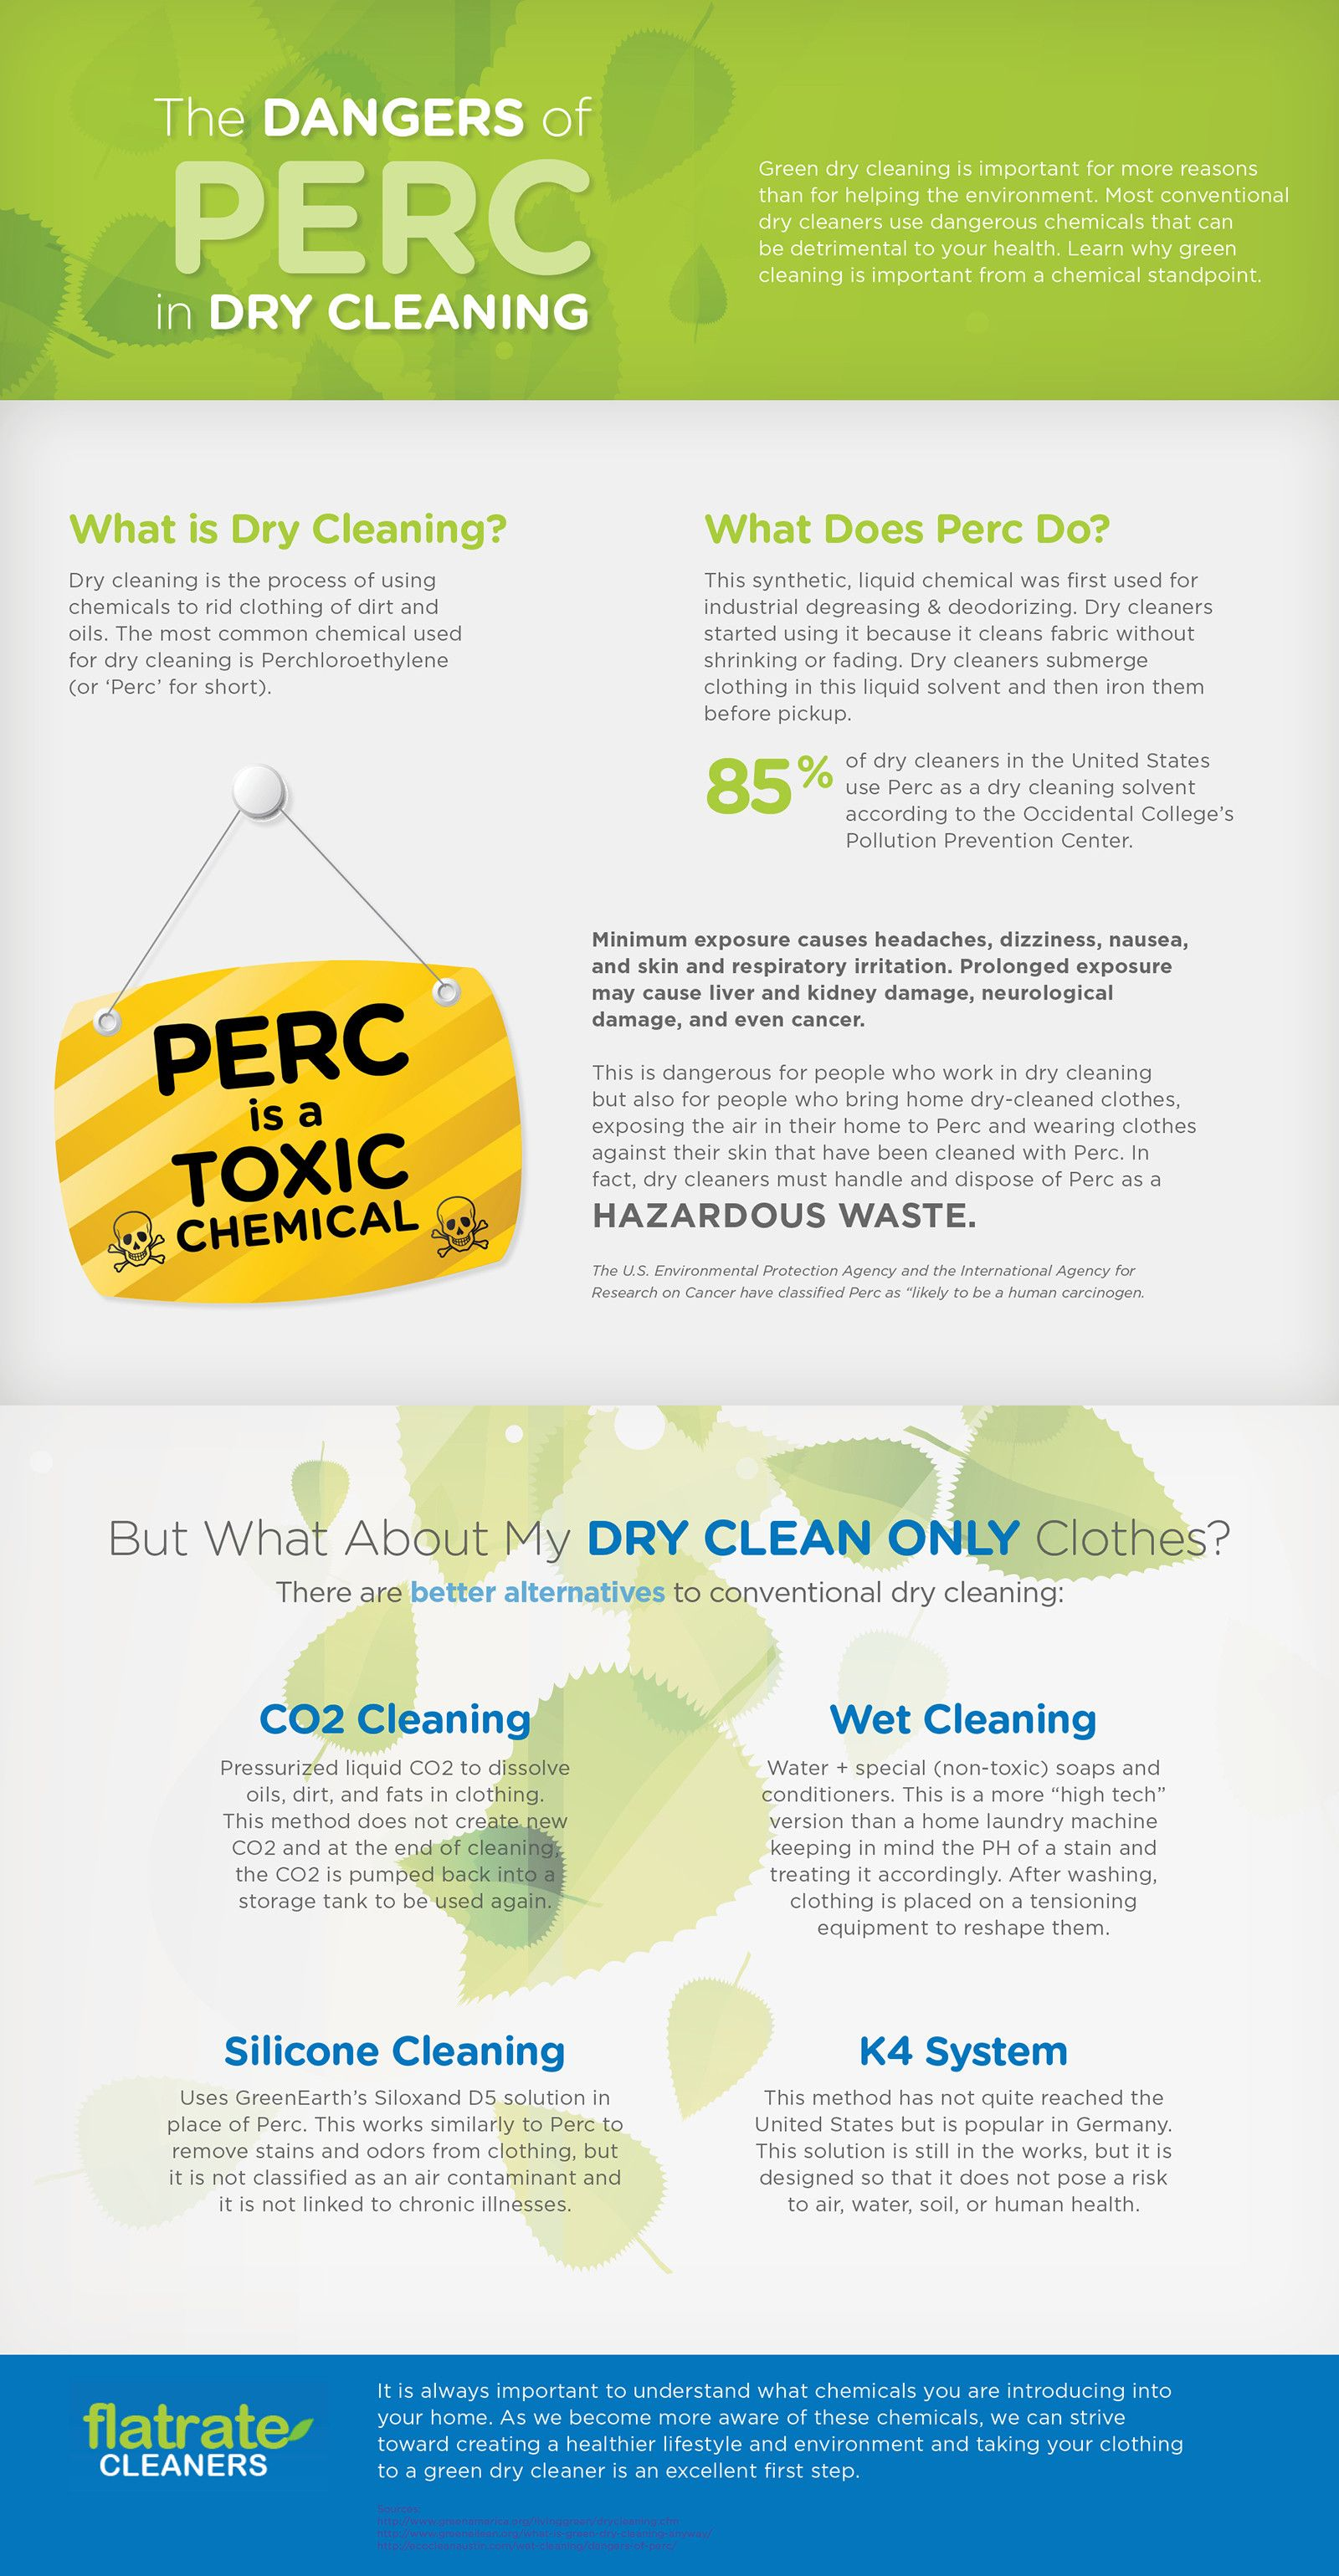 The Dangers of PERC in Dry Cleaning #infographic #DryCleaning #Environment